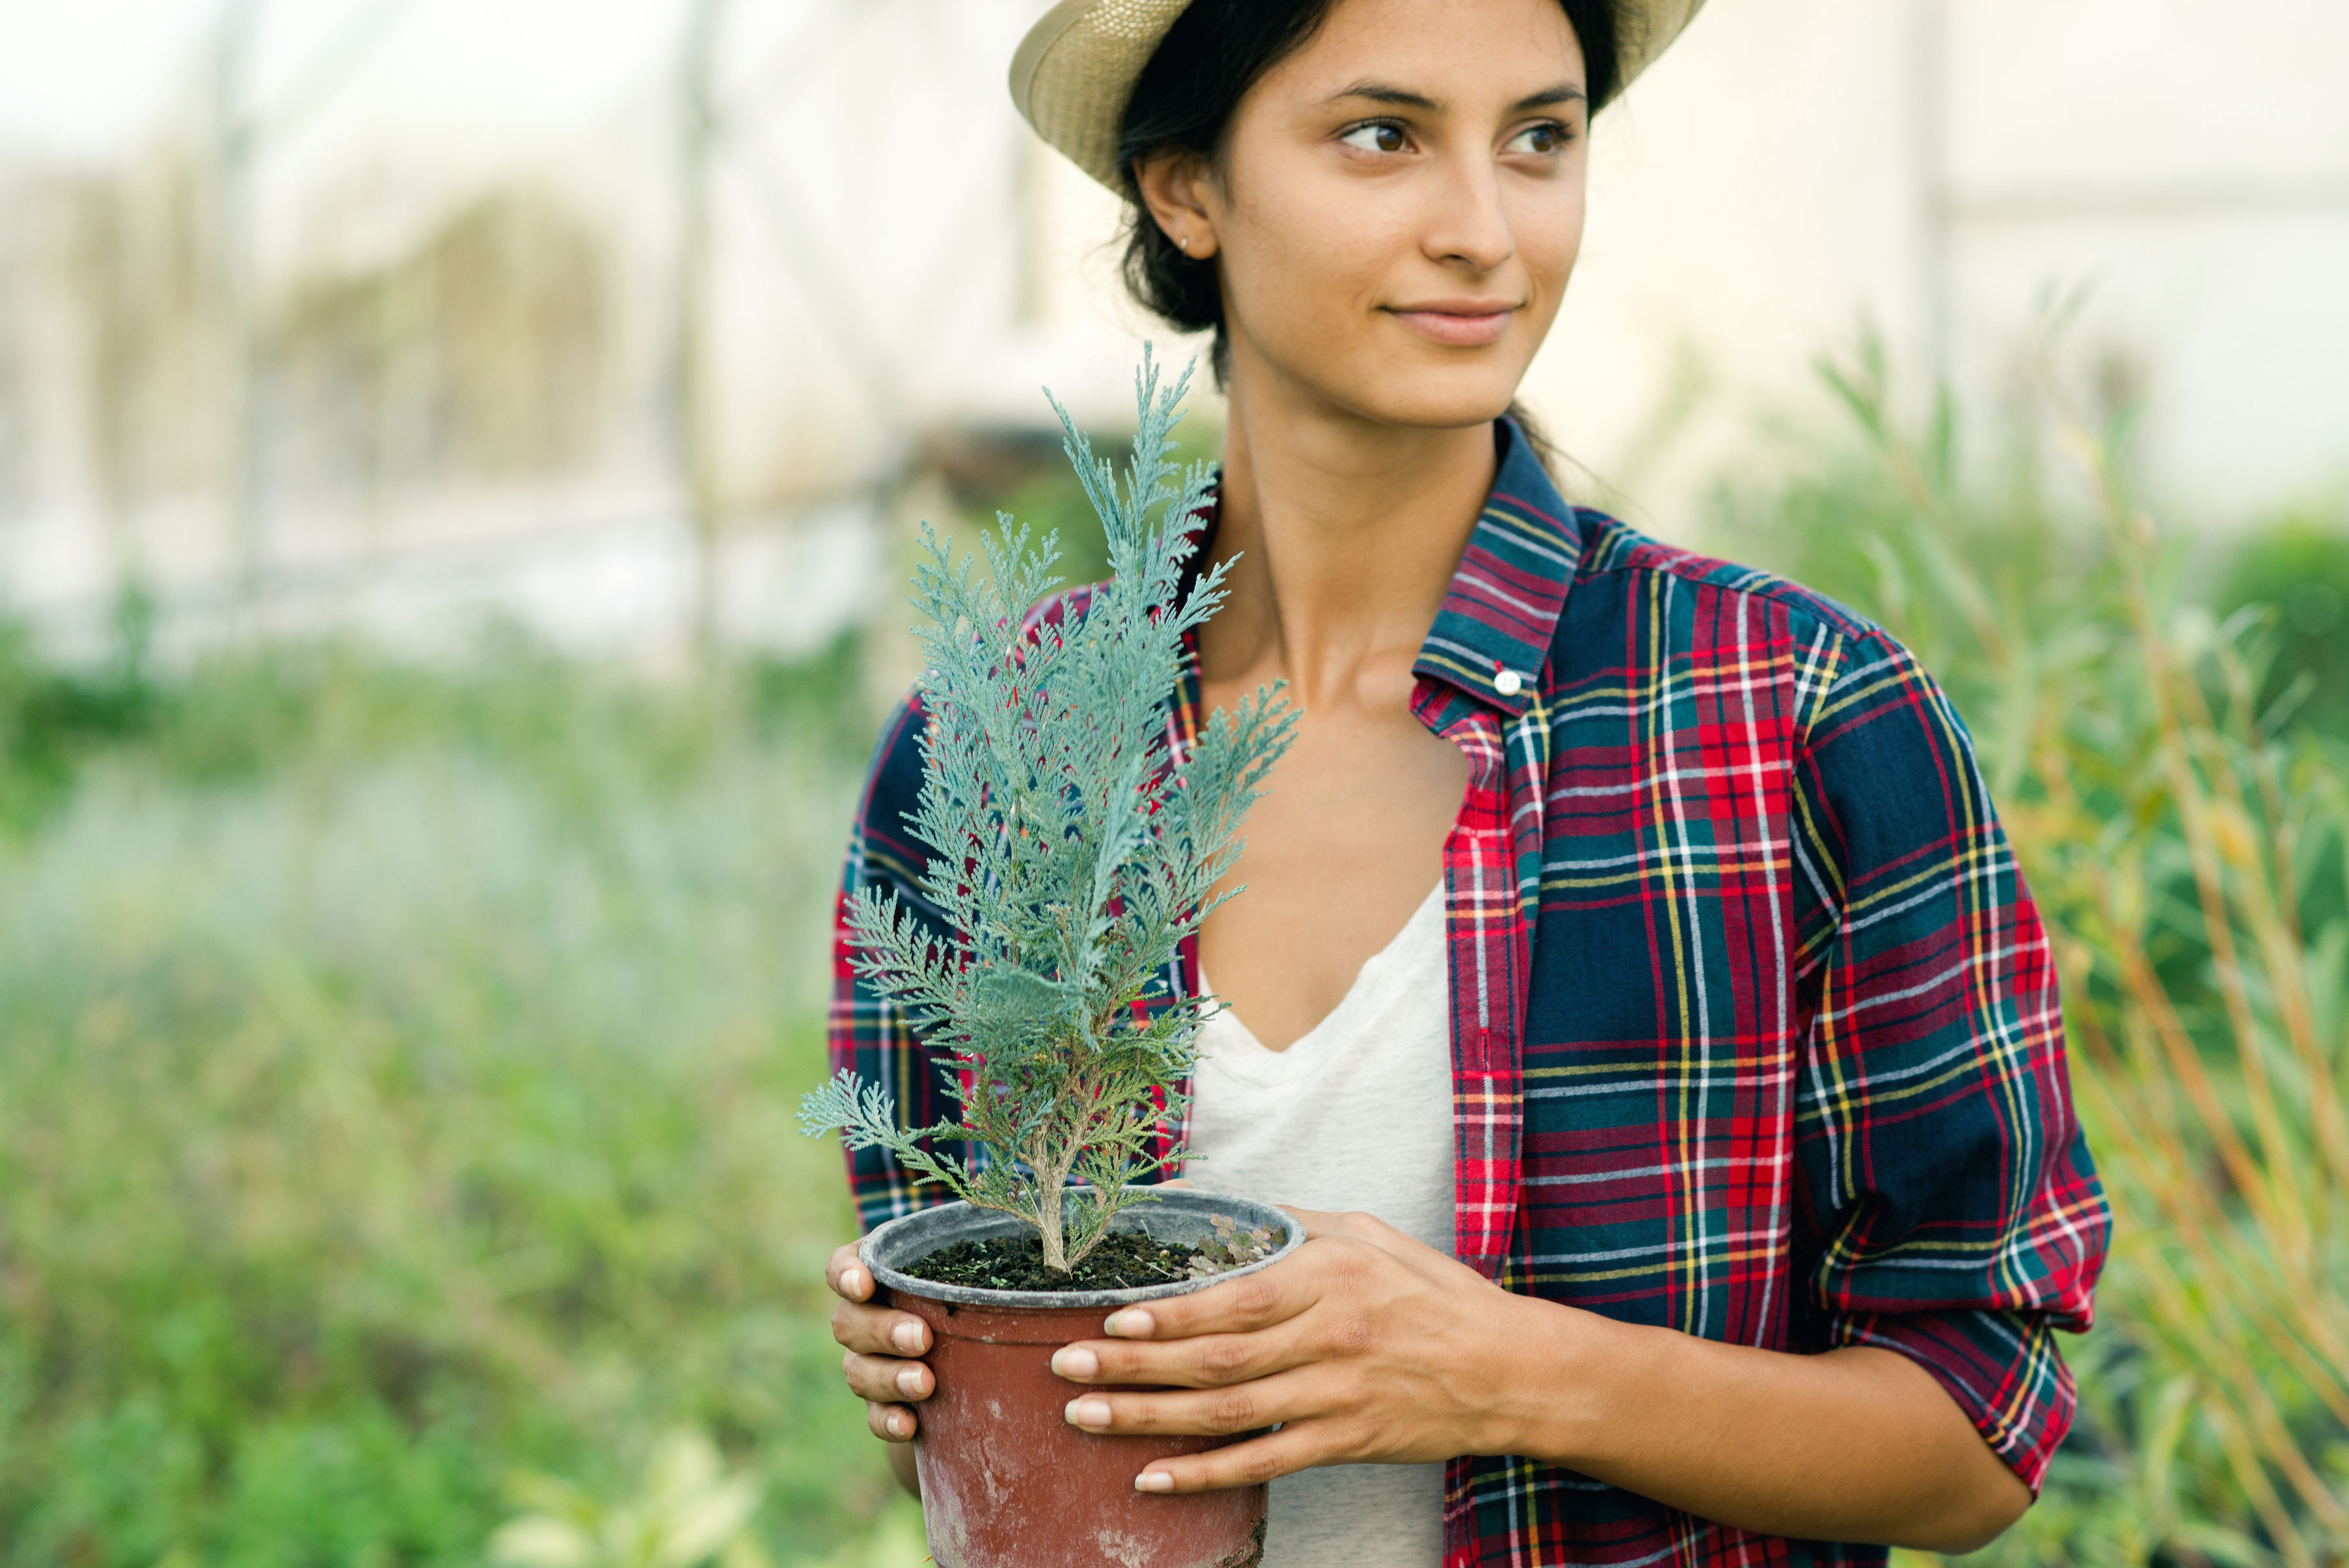 Fall Plants 101: Everything You Need to Know About the Autumnal Planting Season